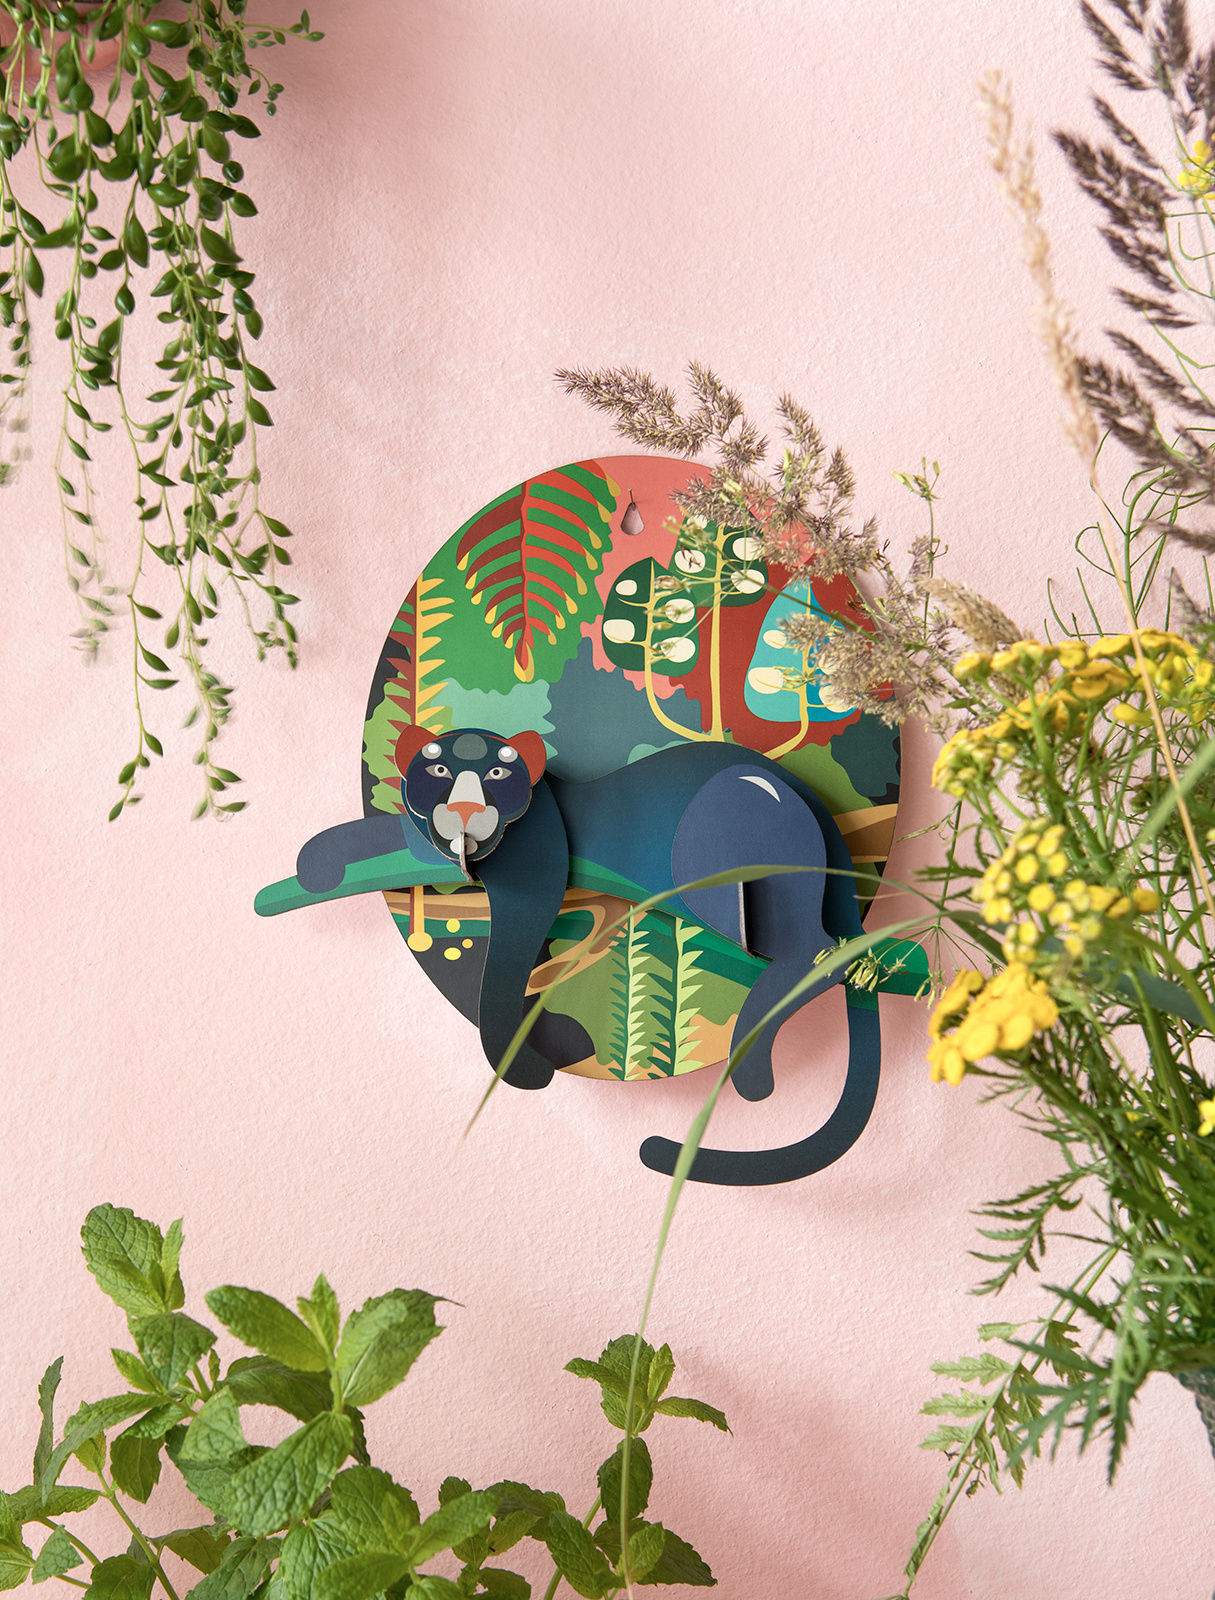 Studio Roof 3D Wall Decoration Jungle Puma